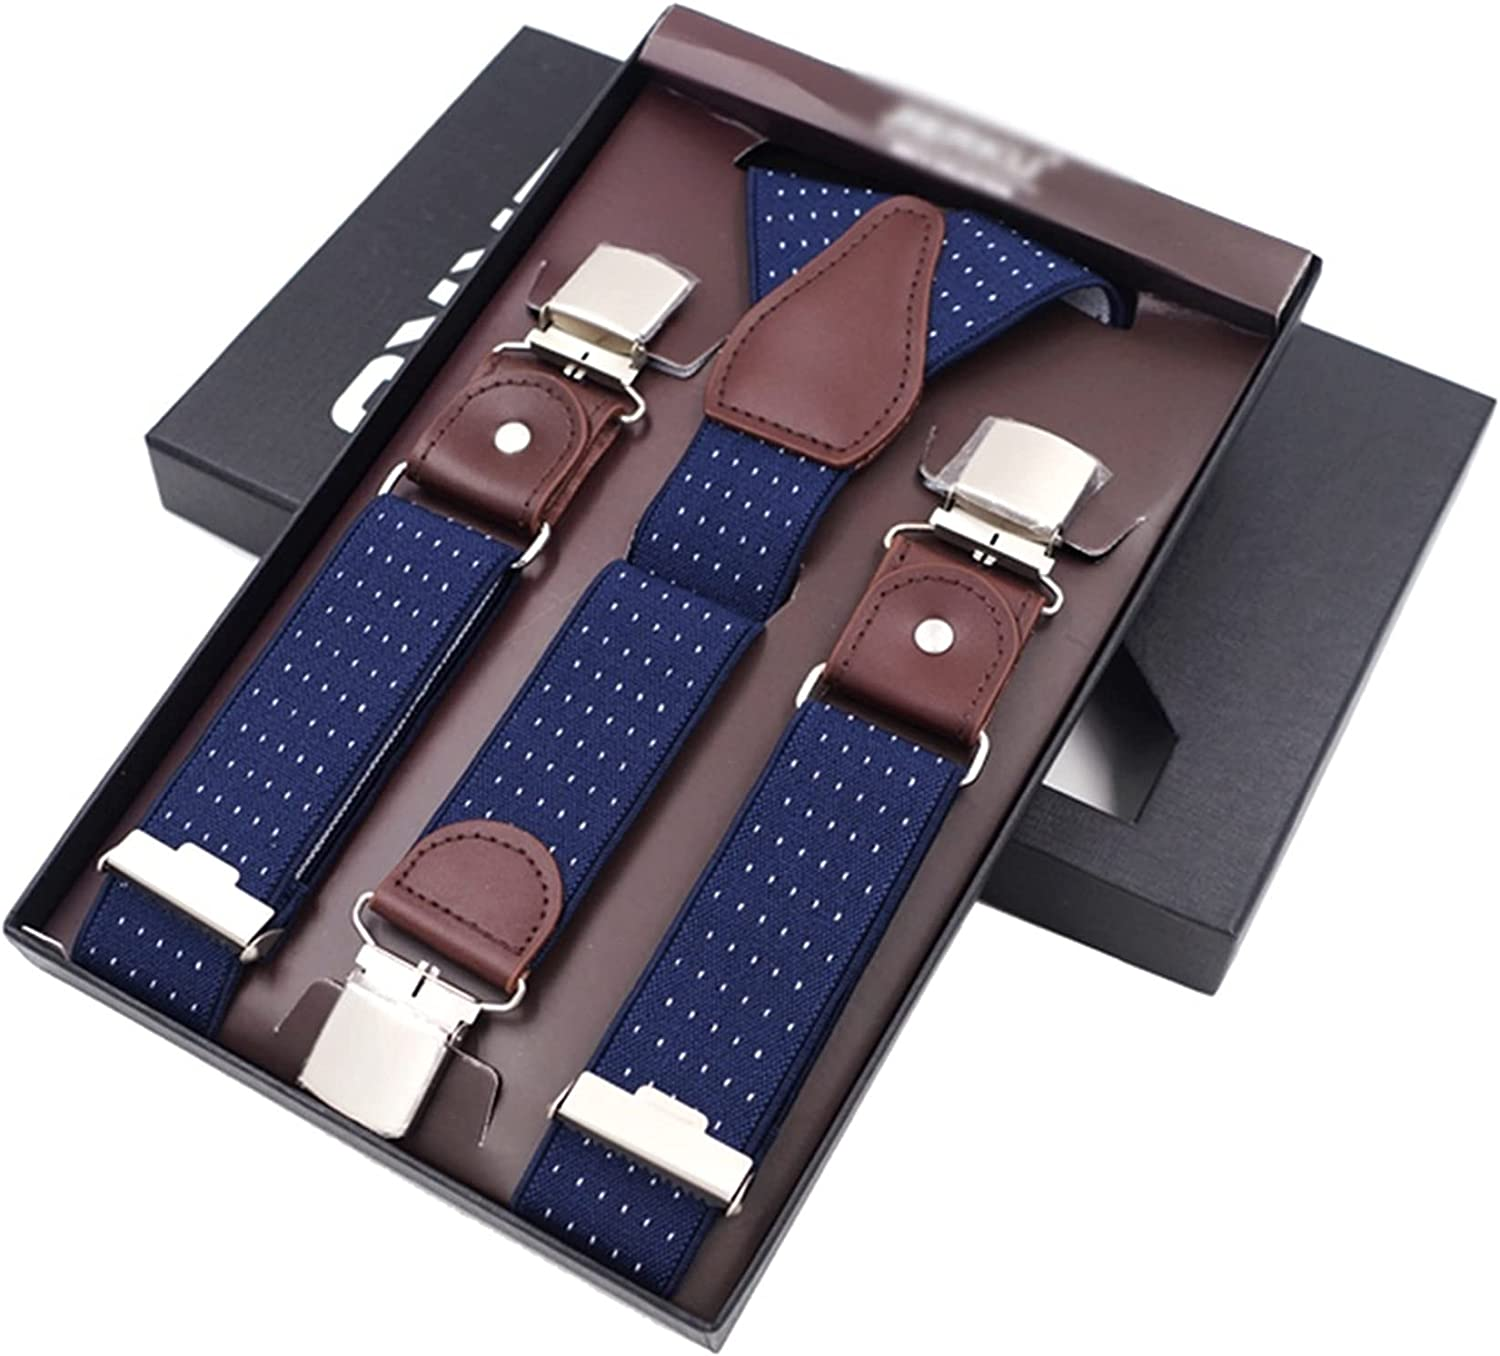 NJBYX Man's Suspenders 3 Clips Leather Braces Casual Suspensorios Trousers Strap 3.5120cm Gift for Dad (Color : B, Size : Adjustable)